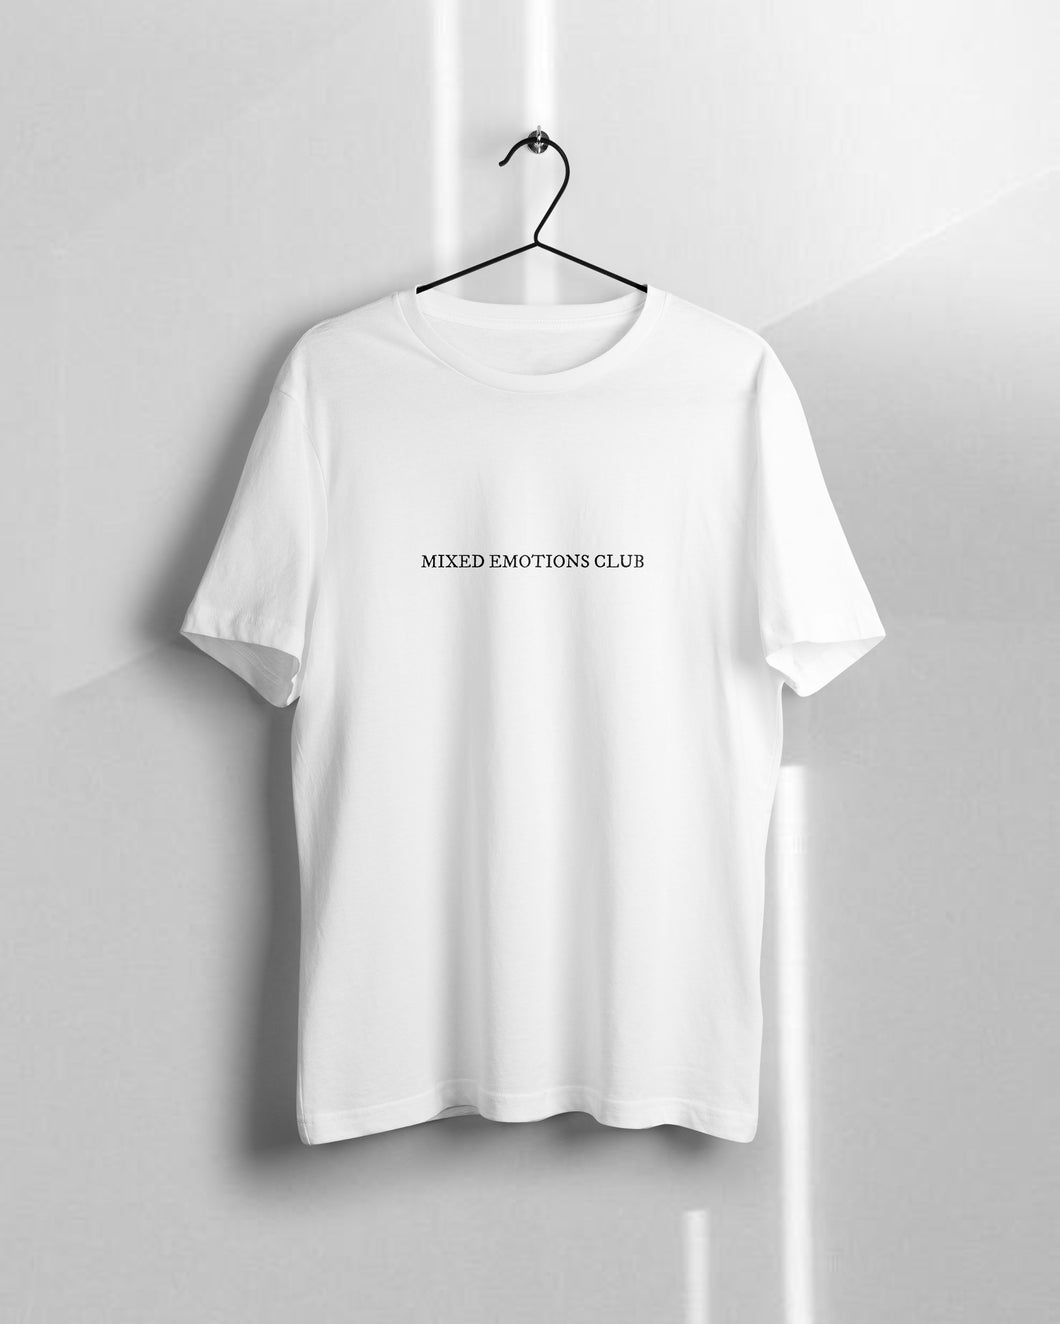 Mixed Emotions Club T-shirt - KILSHEE Co.